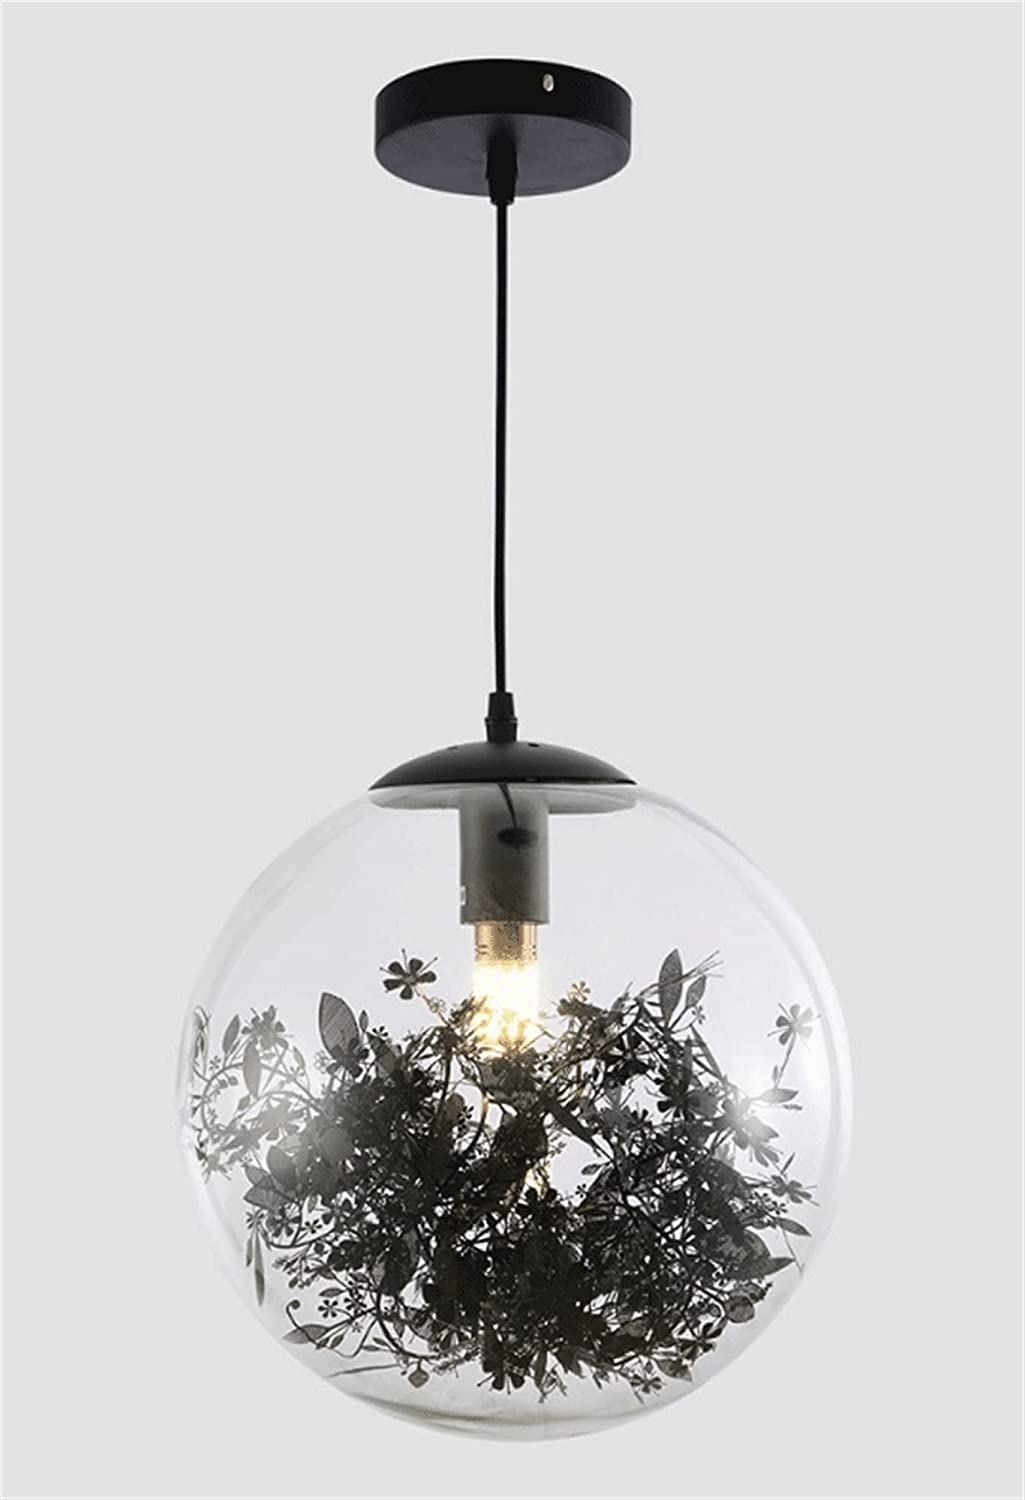 Chandelier Fixture Modern Bedside Pendant Ranking TOP17 Lights Our shop OFFers the best service Glass Lampshad